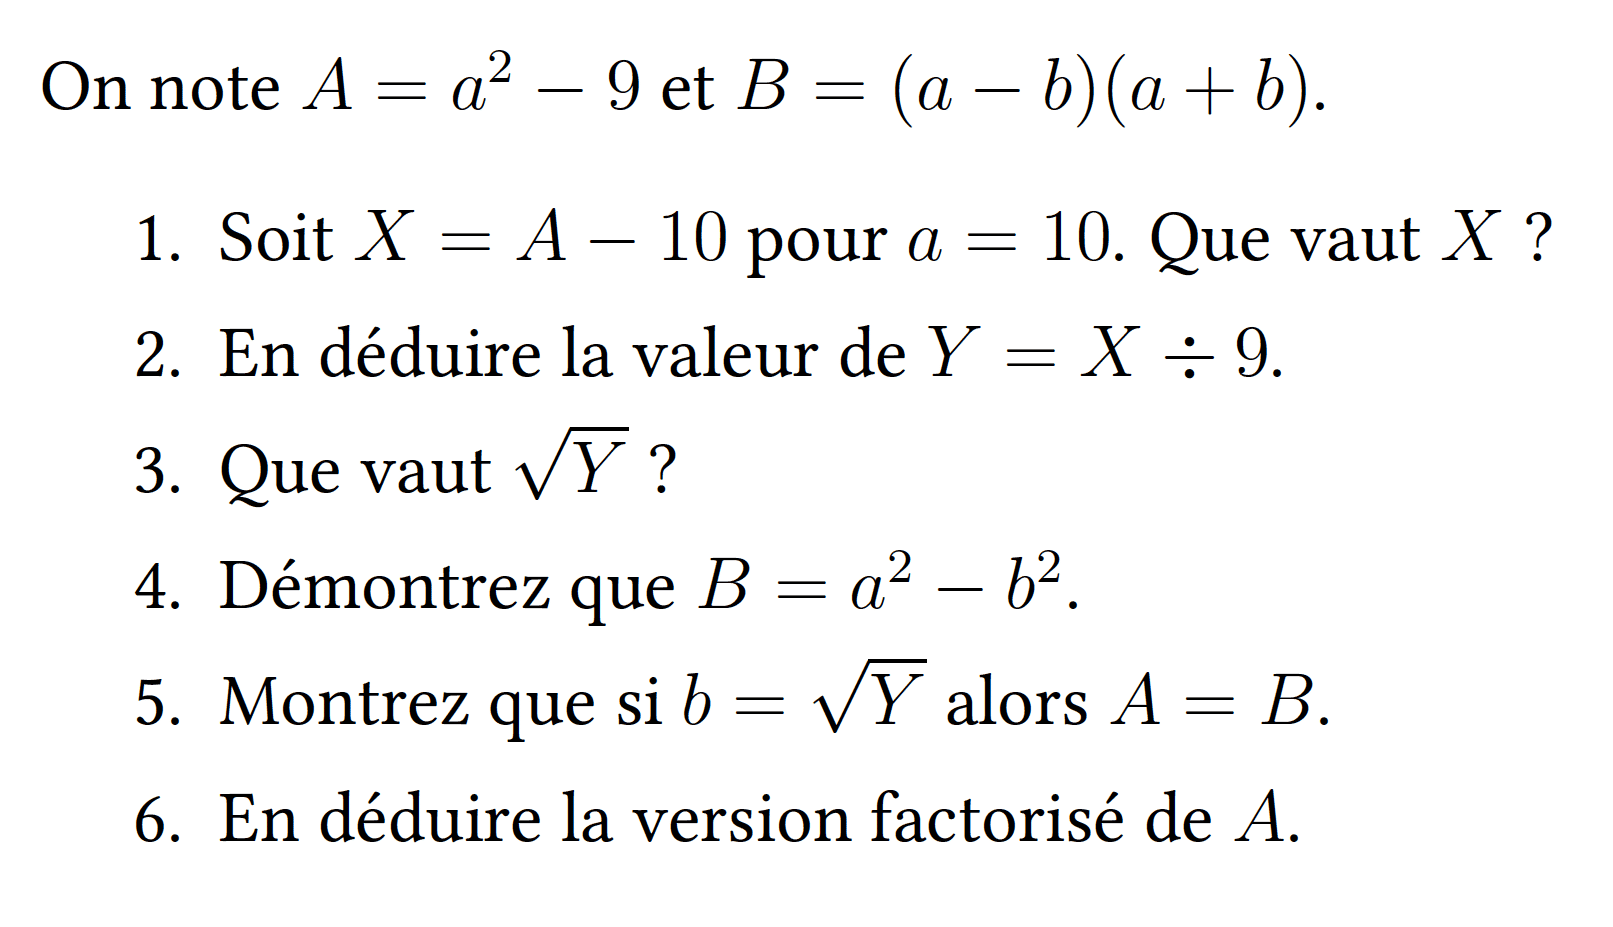 Un exercice de maths illustrant la méthode JUS